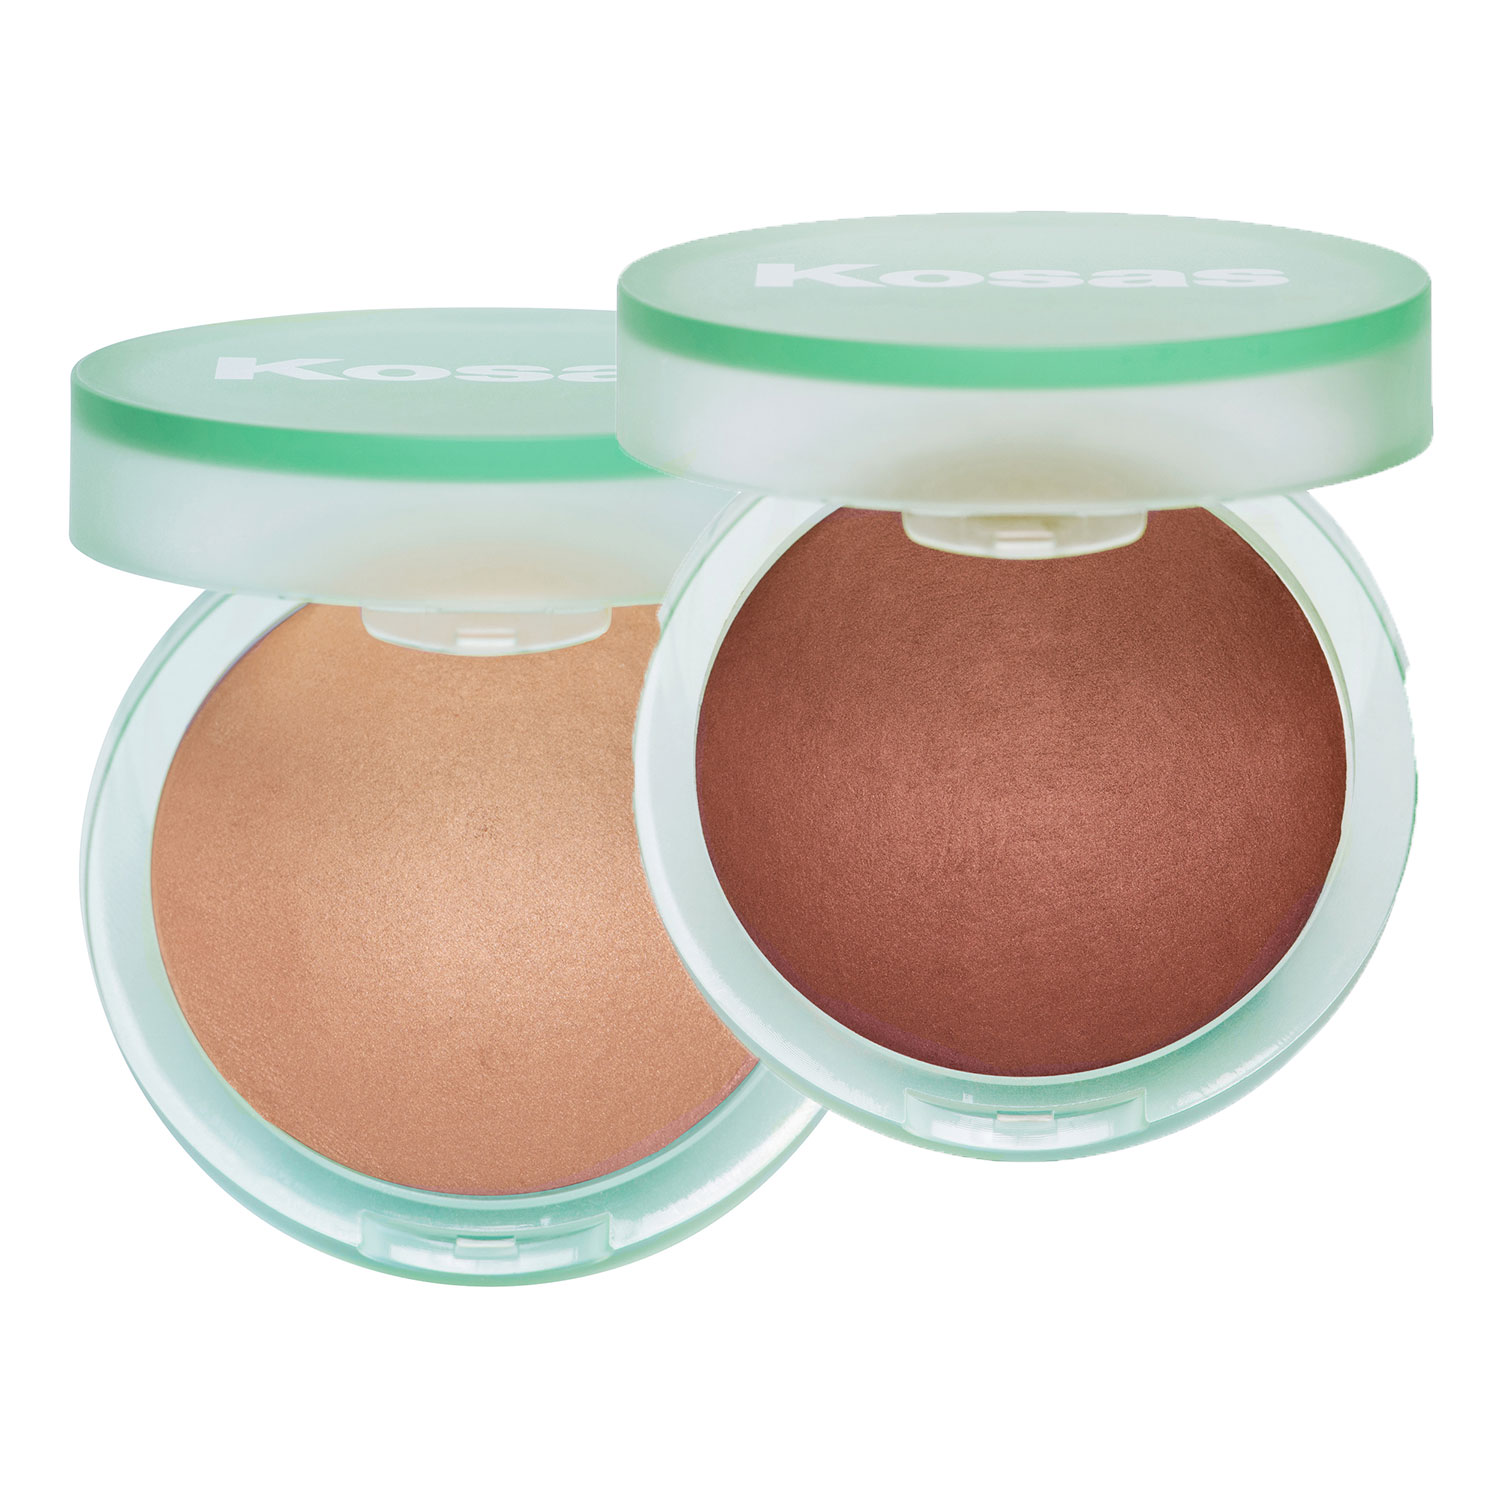 Best Beauty Products for August: Bronzer